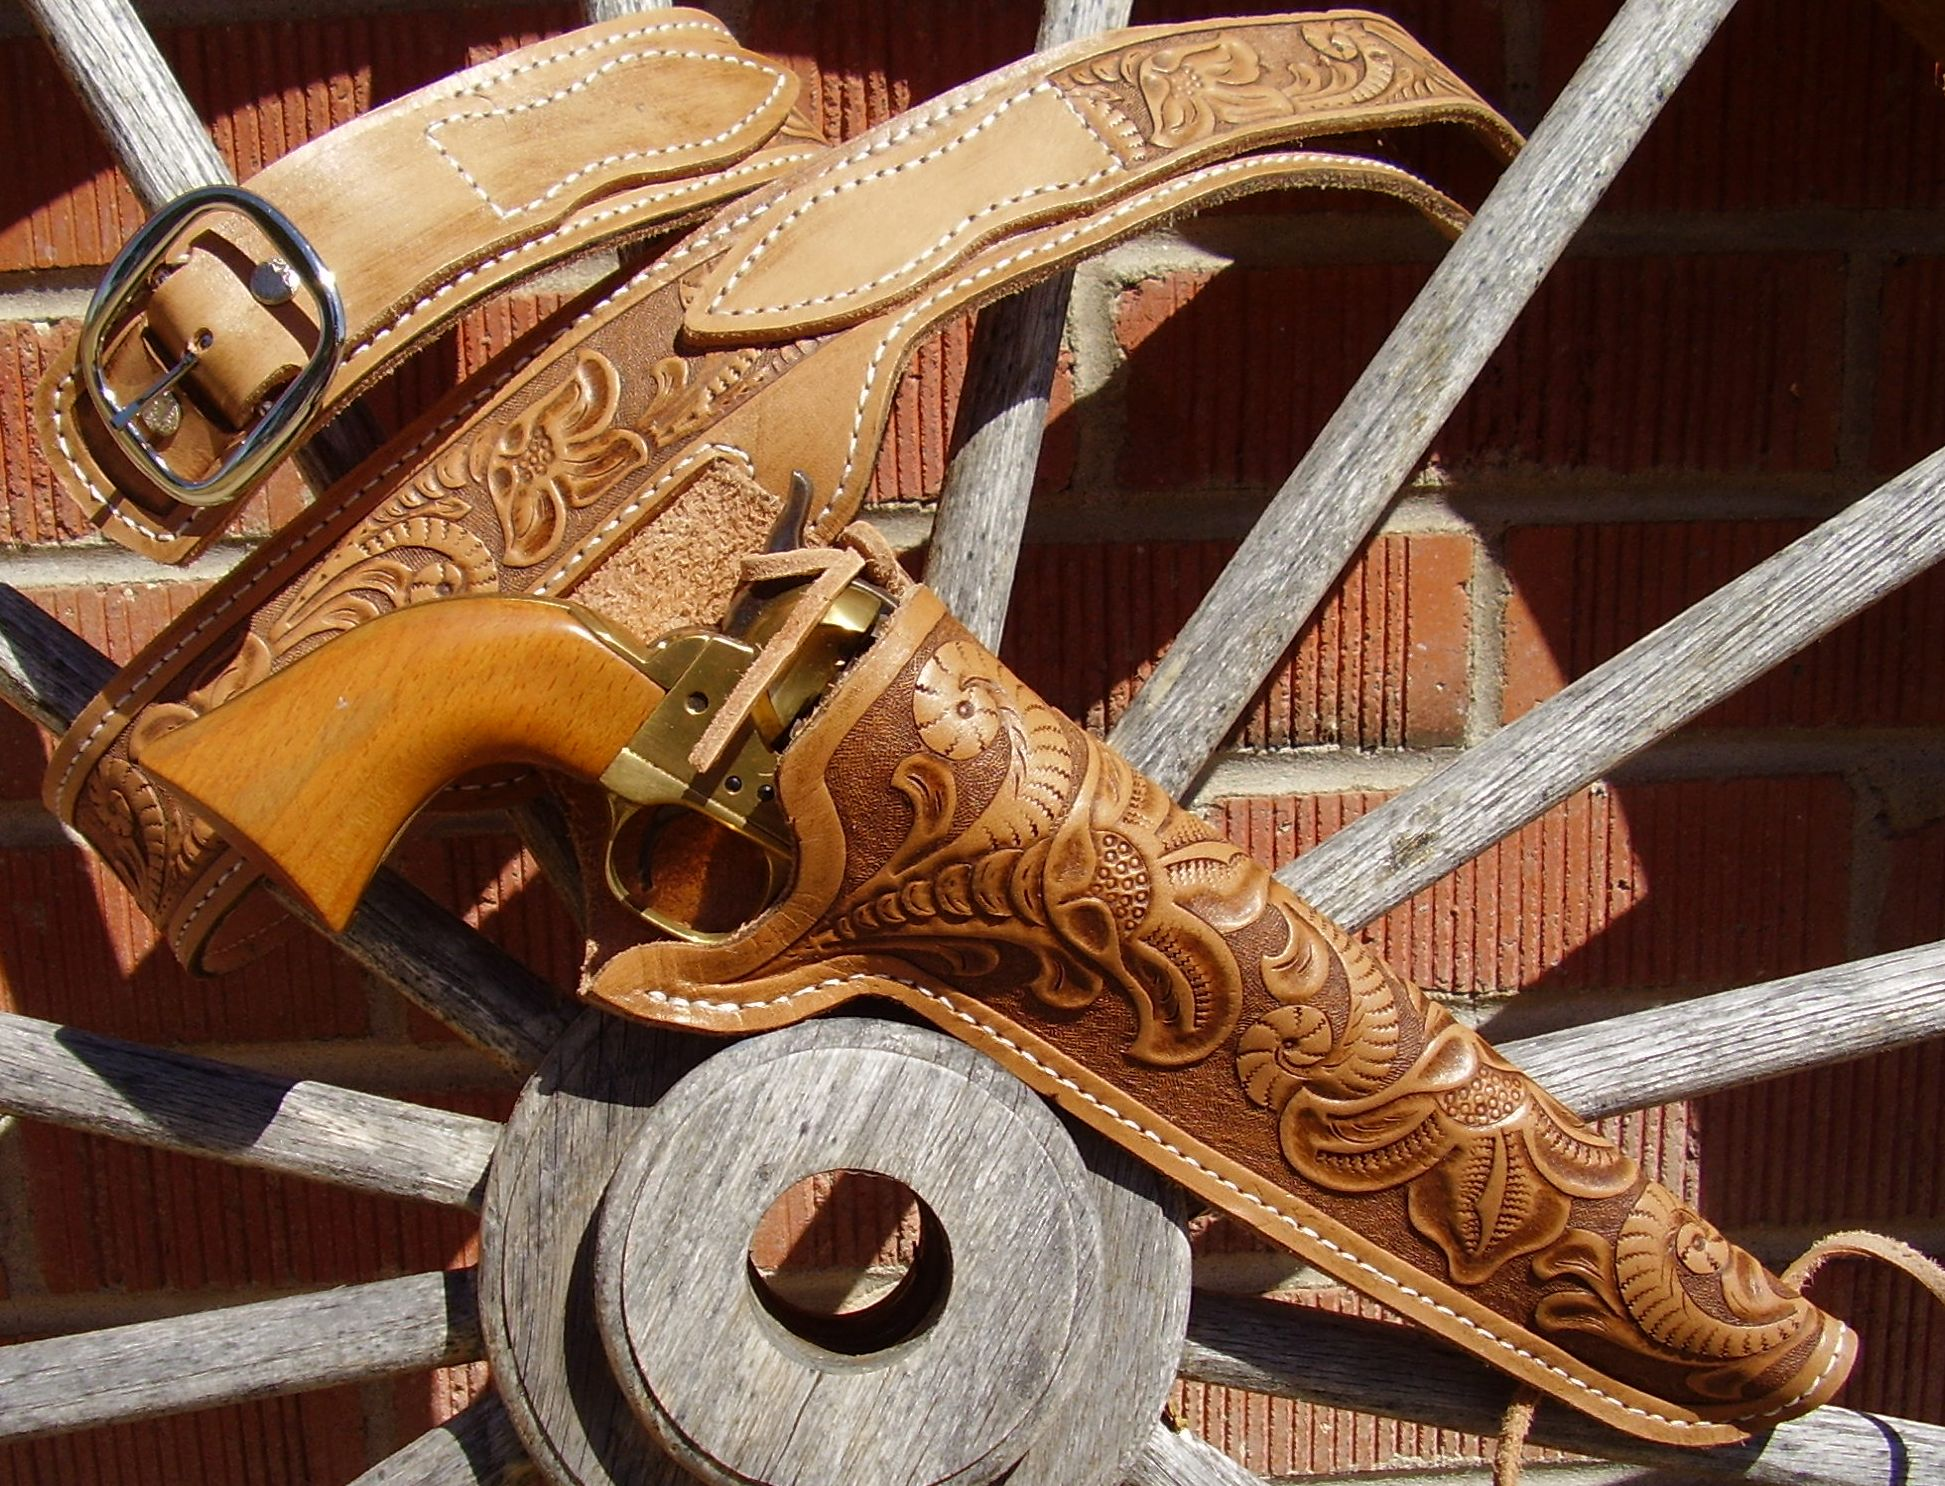 Hand tooled leather - Western style holsters, belts, rifle